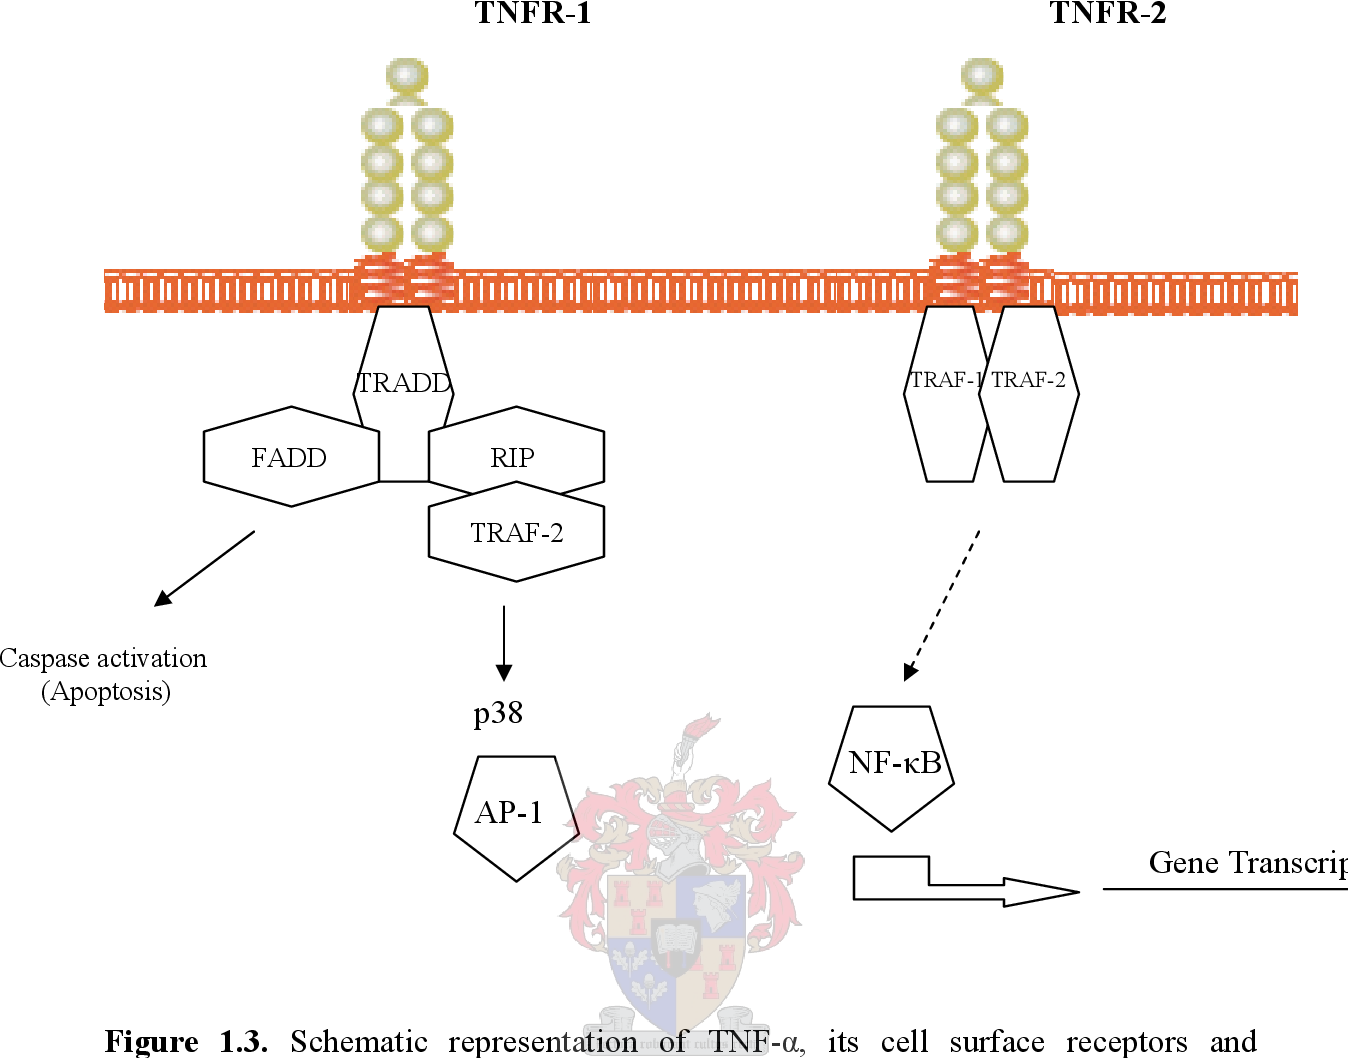 Figure 1.3. Schematic representation of TNF-α, its cell surface receptors and associated signalling molecules. Details are discussed throughout the text. TNFR, TNF-α receptor; TRADD, TNFR-associated protein with death domain; TRAF, TNFR-associated fctor; FADD, Fas-associated death domain; AP-1, activator protein1; RIP, receptor interacting protein; NFκB, nuclear factor κB (modified from Sack, 2002).